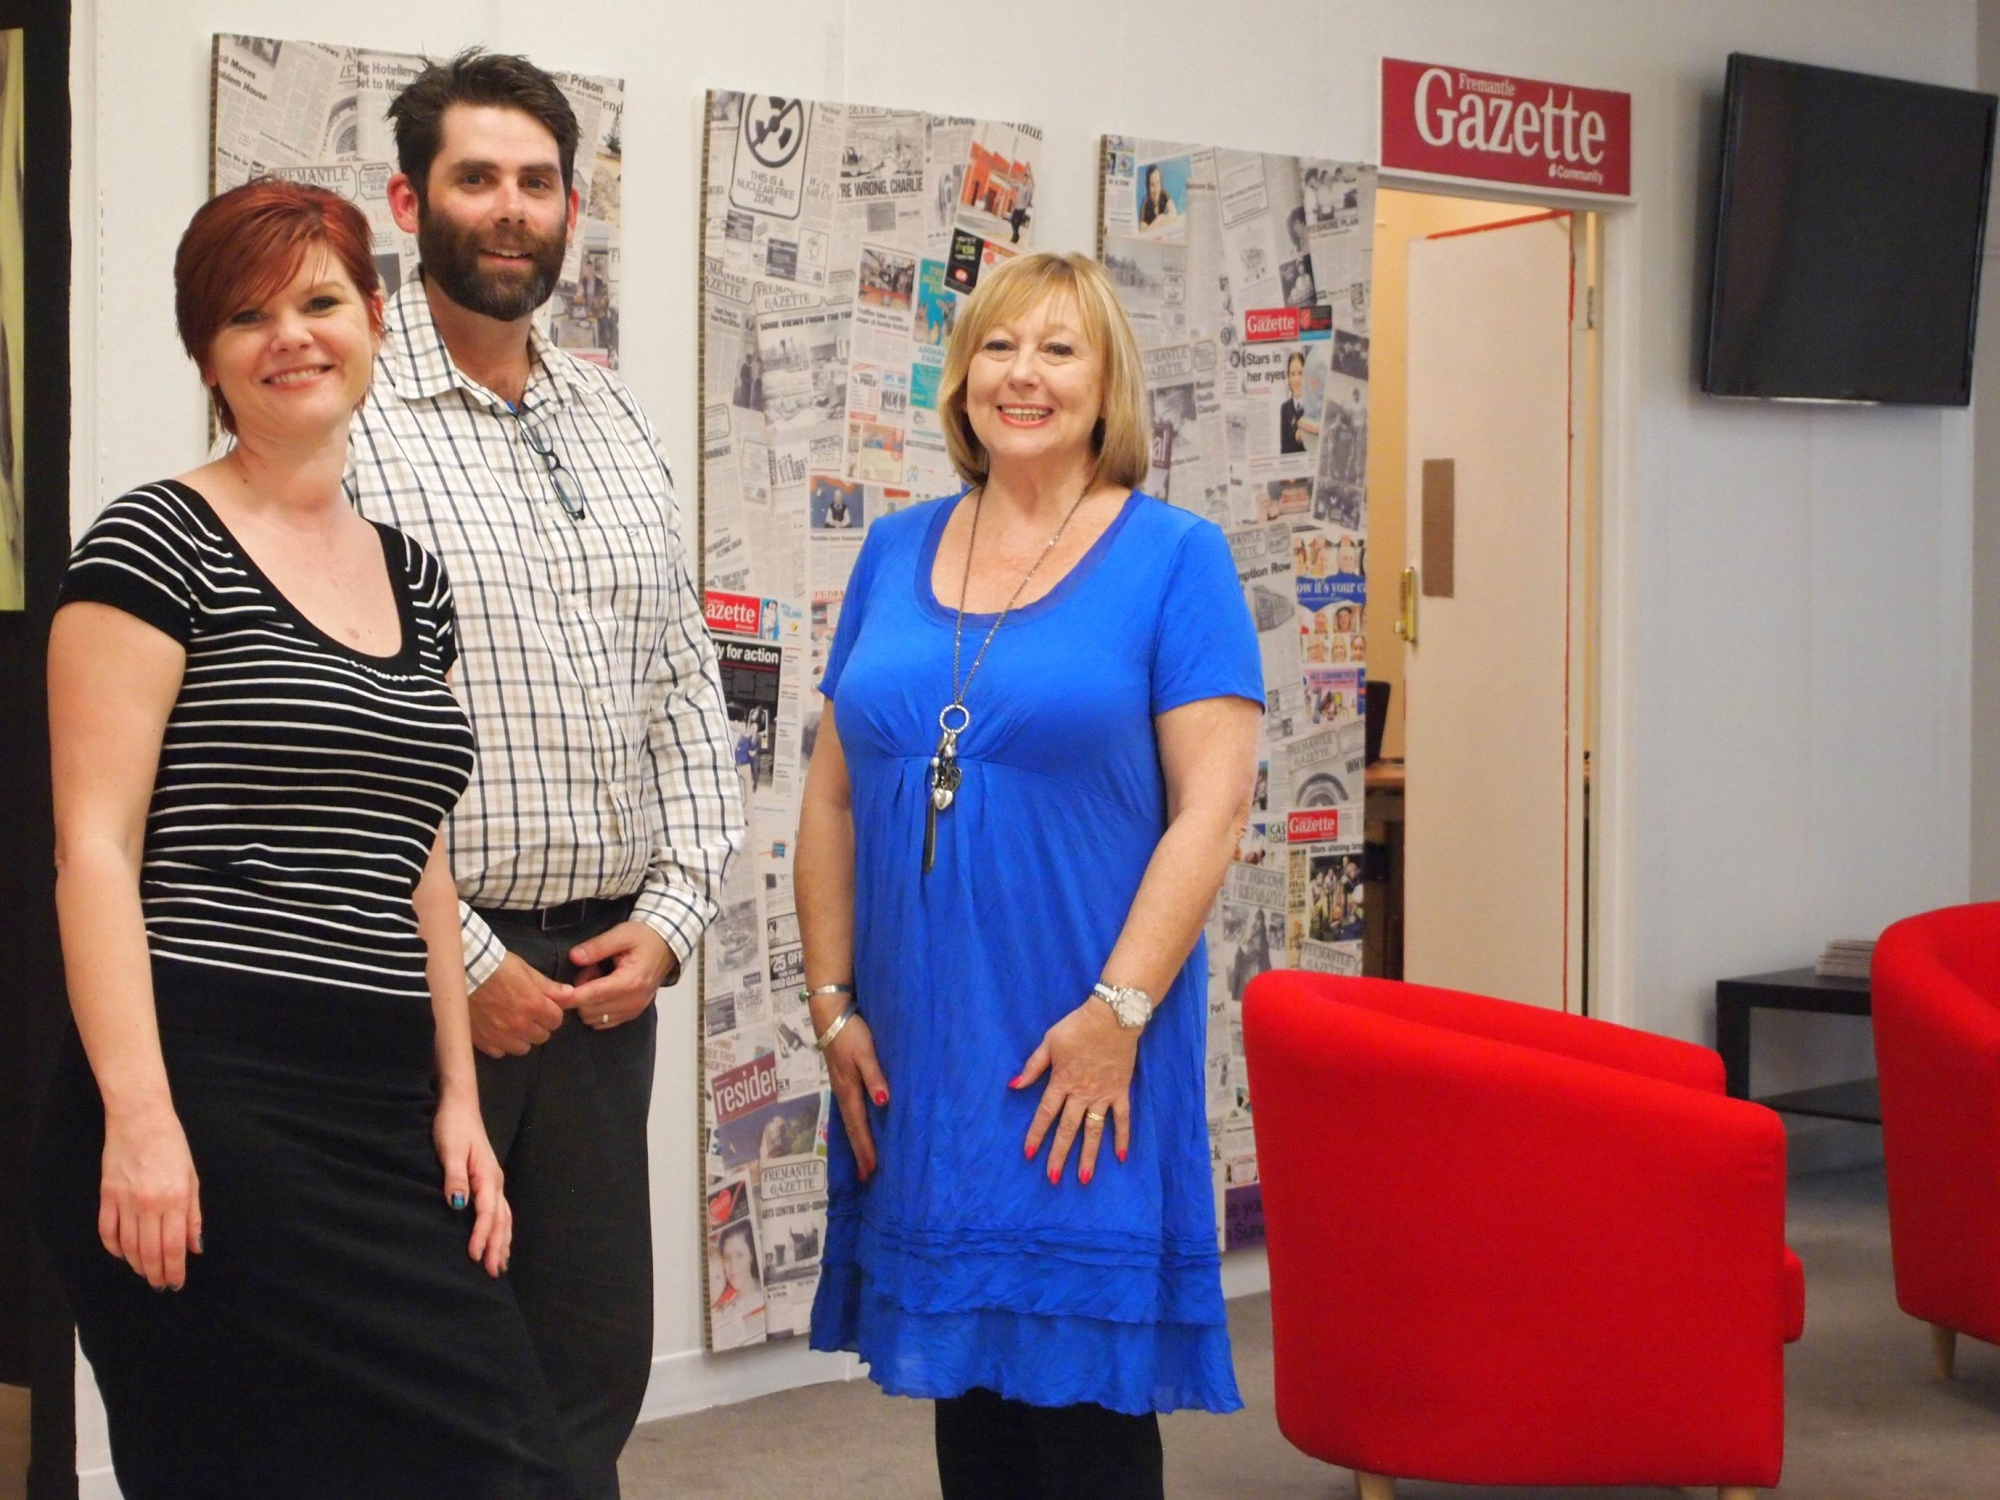 Gazette editor Rachel Watts, sales manager Nathan Wayne and senior sales executive Stephanie Cole.